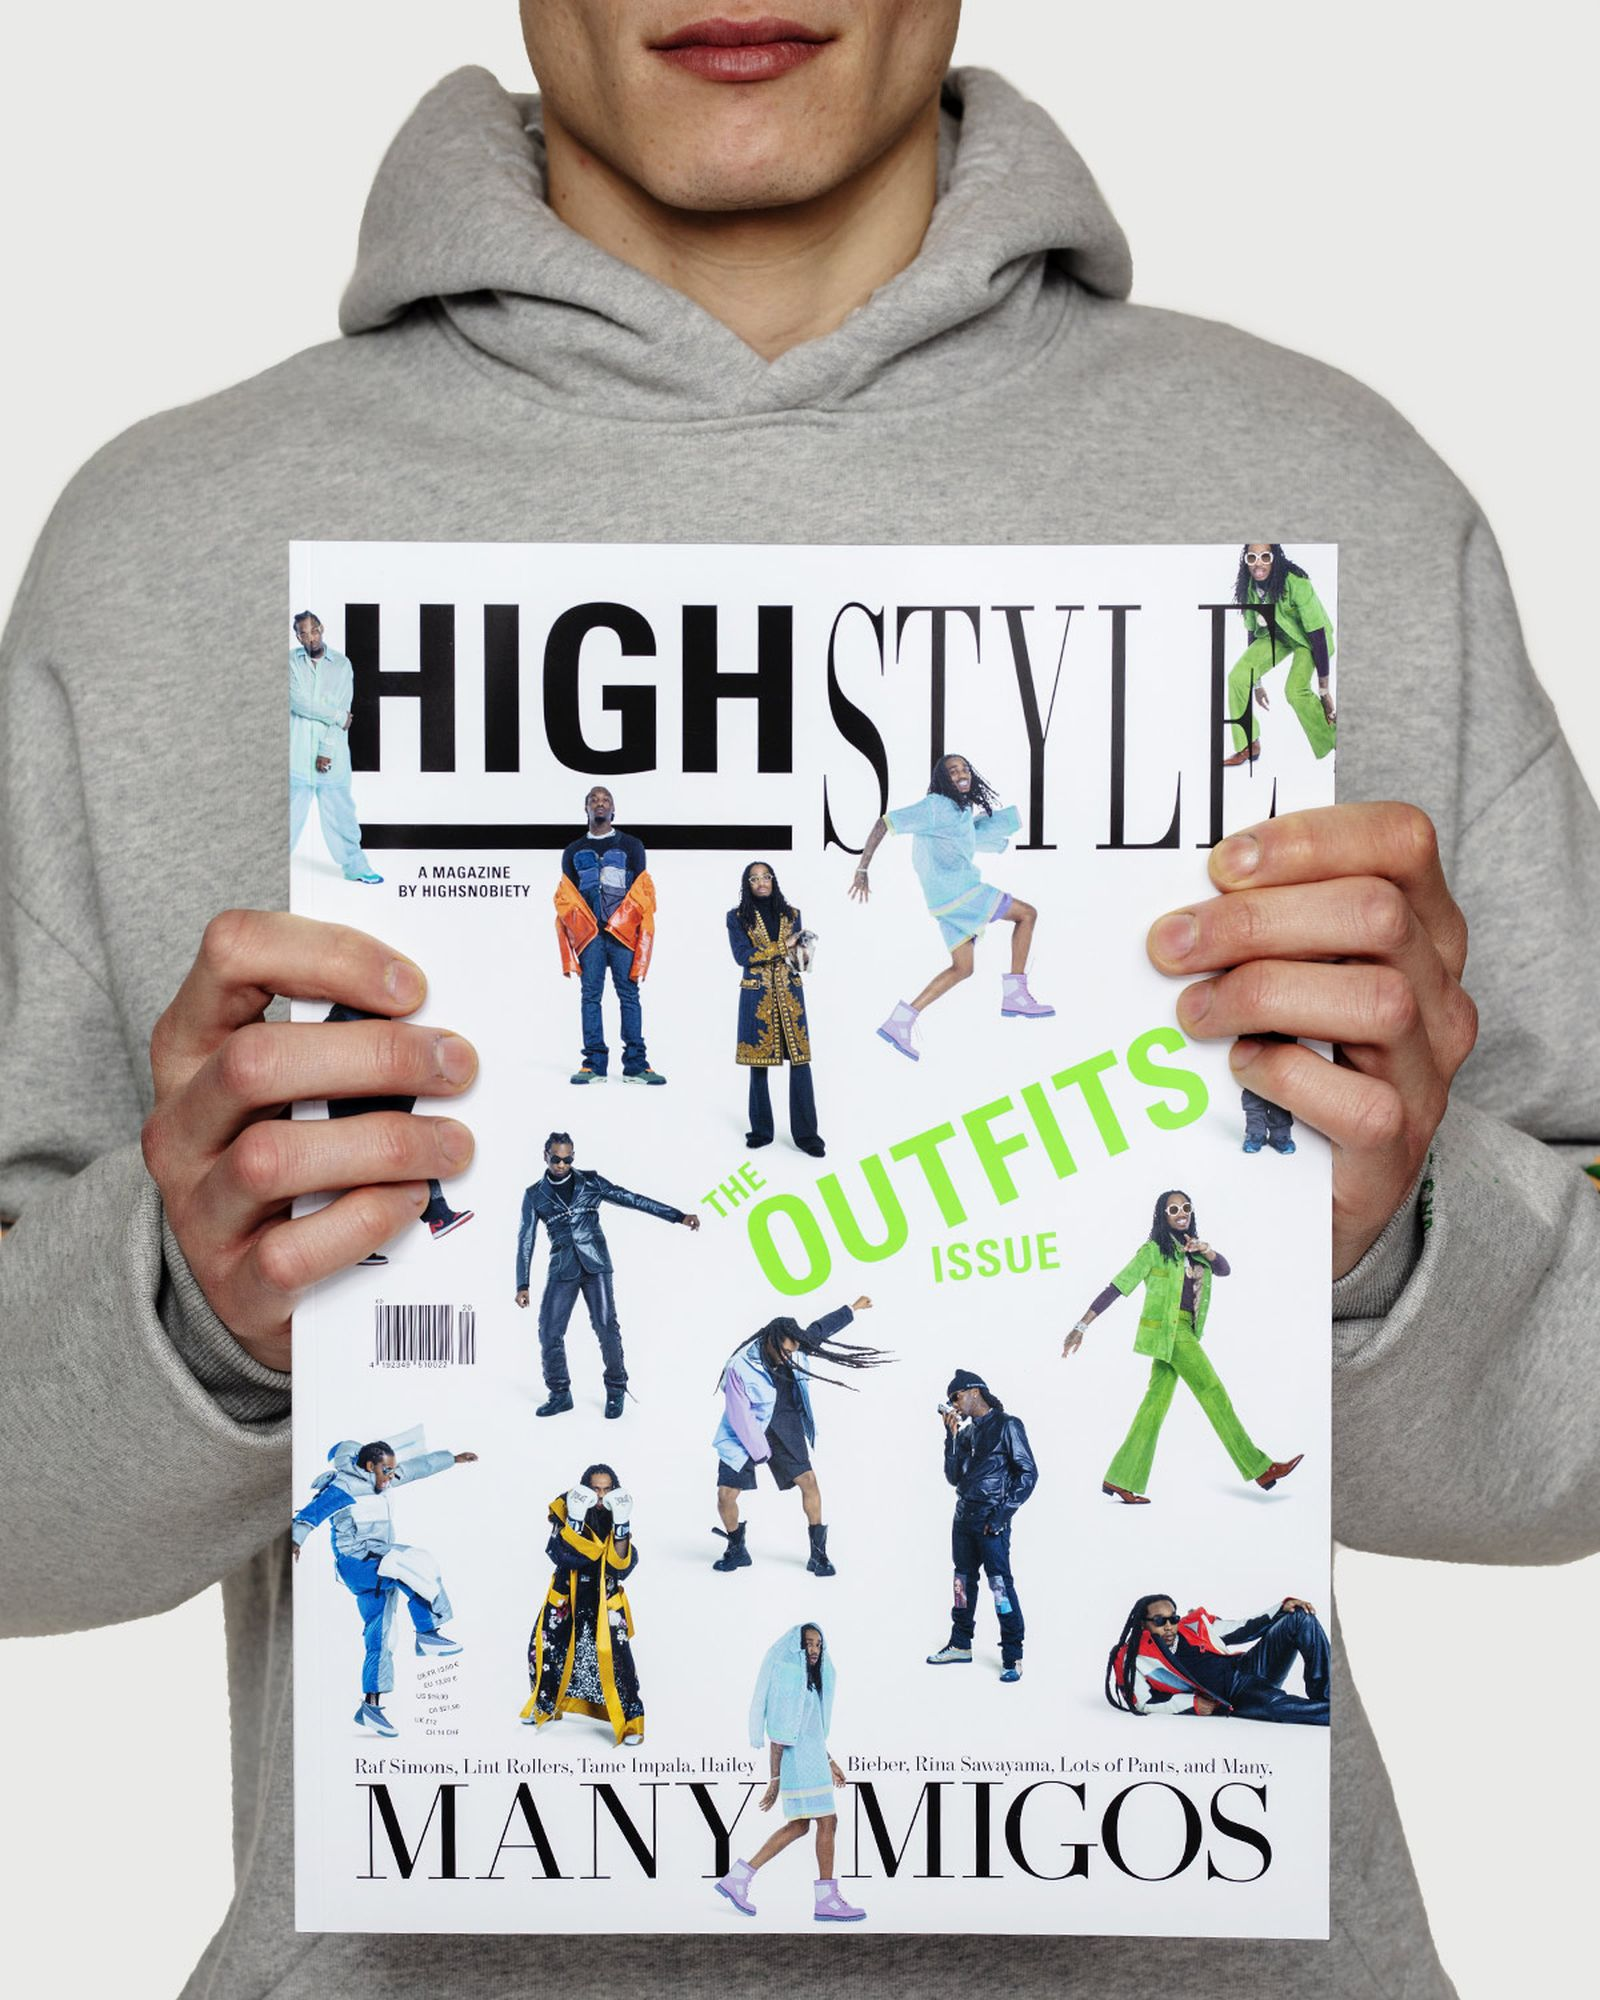 meet-highstyle-new-magazine-highsnobiety-03